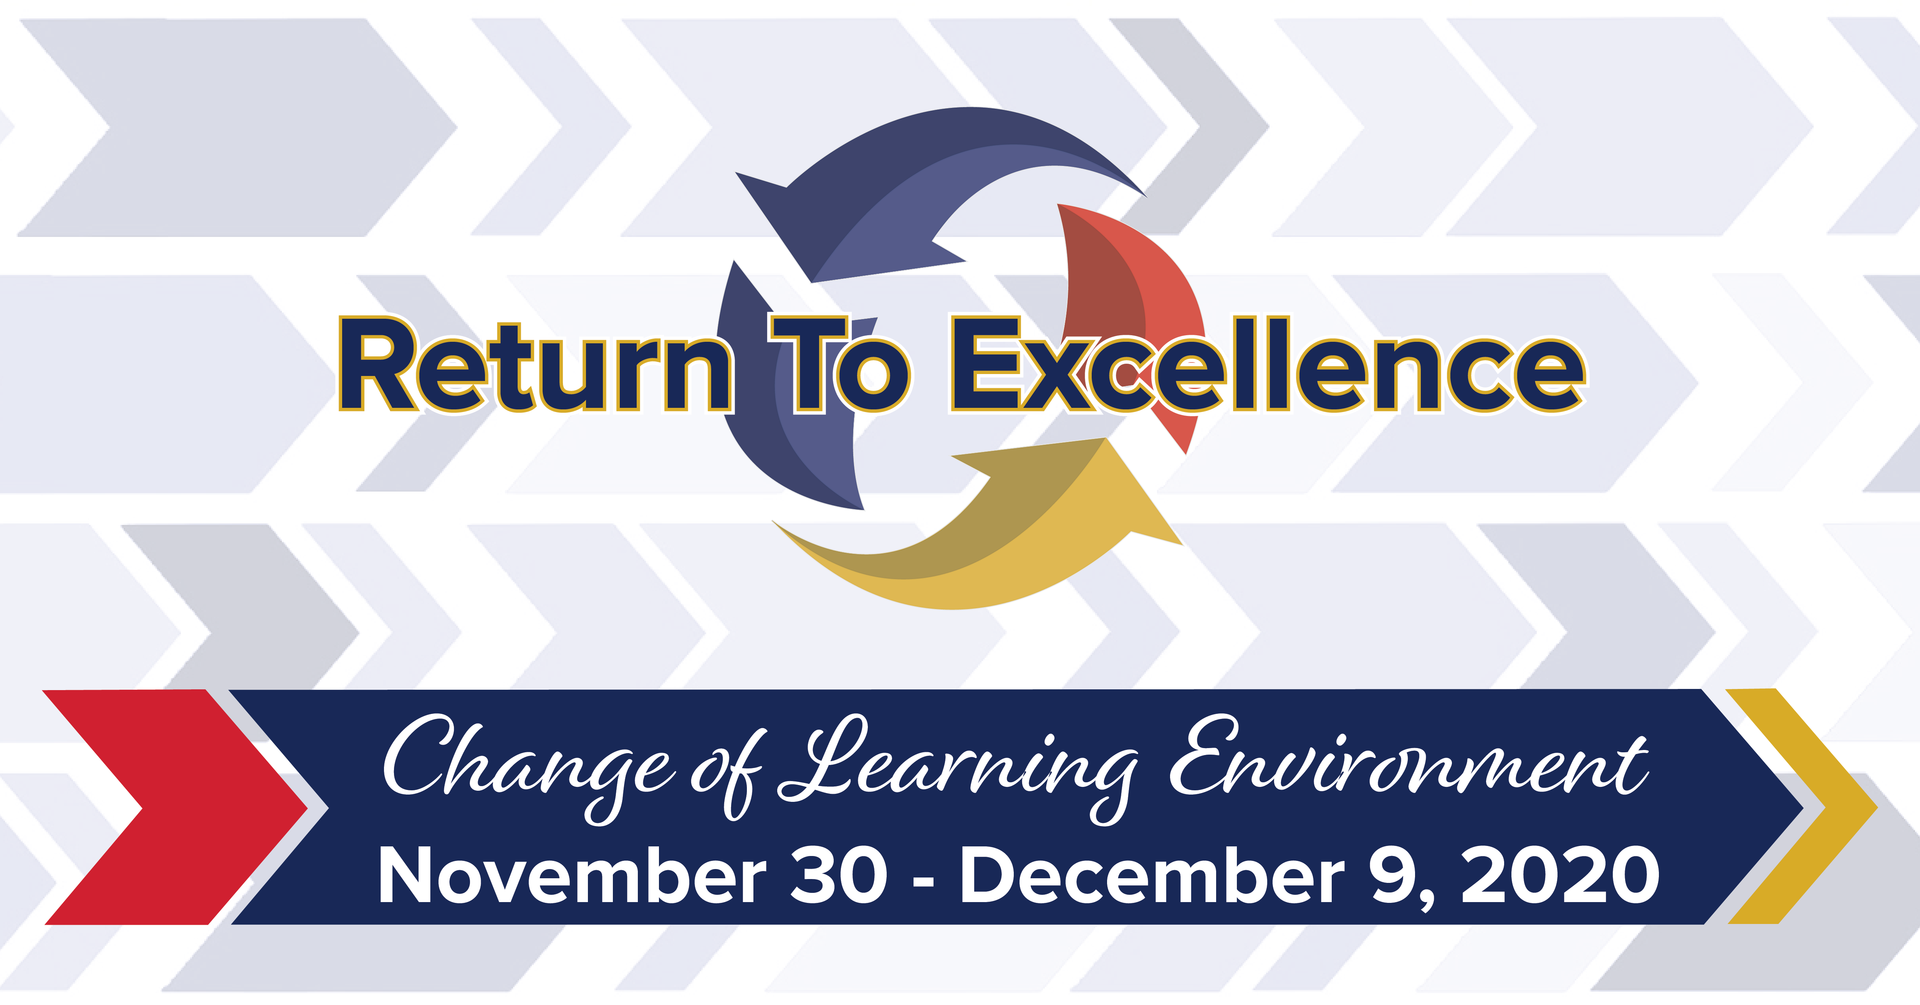 Return to Excellence – Change of Leanring Environment – October 2 through October 11 @ 11:59PM, 2020